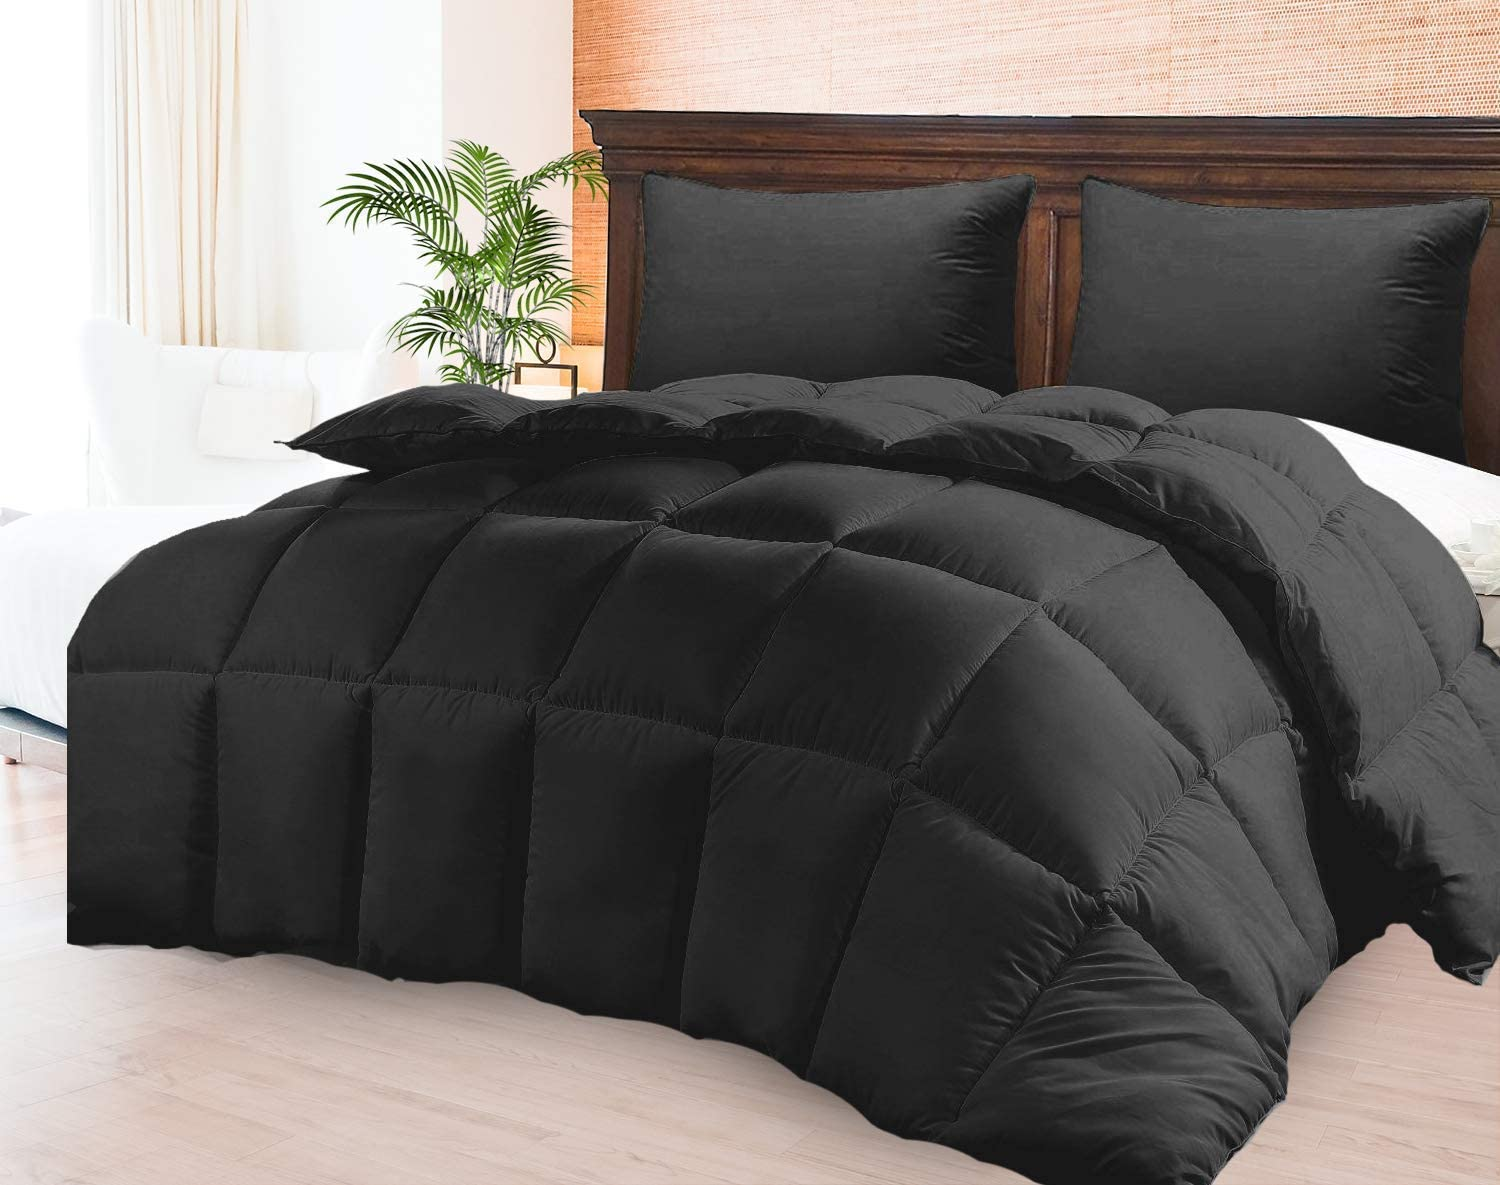 98 x 120 Premium Quality Luxurious All Season Light-Weight Black Comforter Duvet Insert 800 TC 750 GSM Fill Power 100/% Pima Cotton Hypo-allergenic with 2 Pillow Cases Oversize King